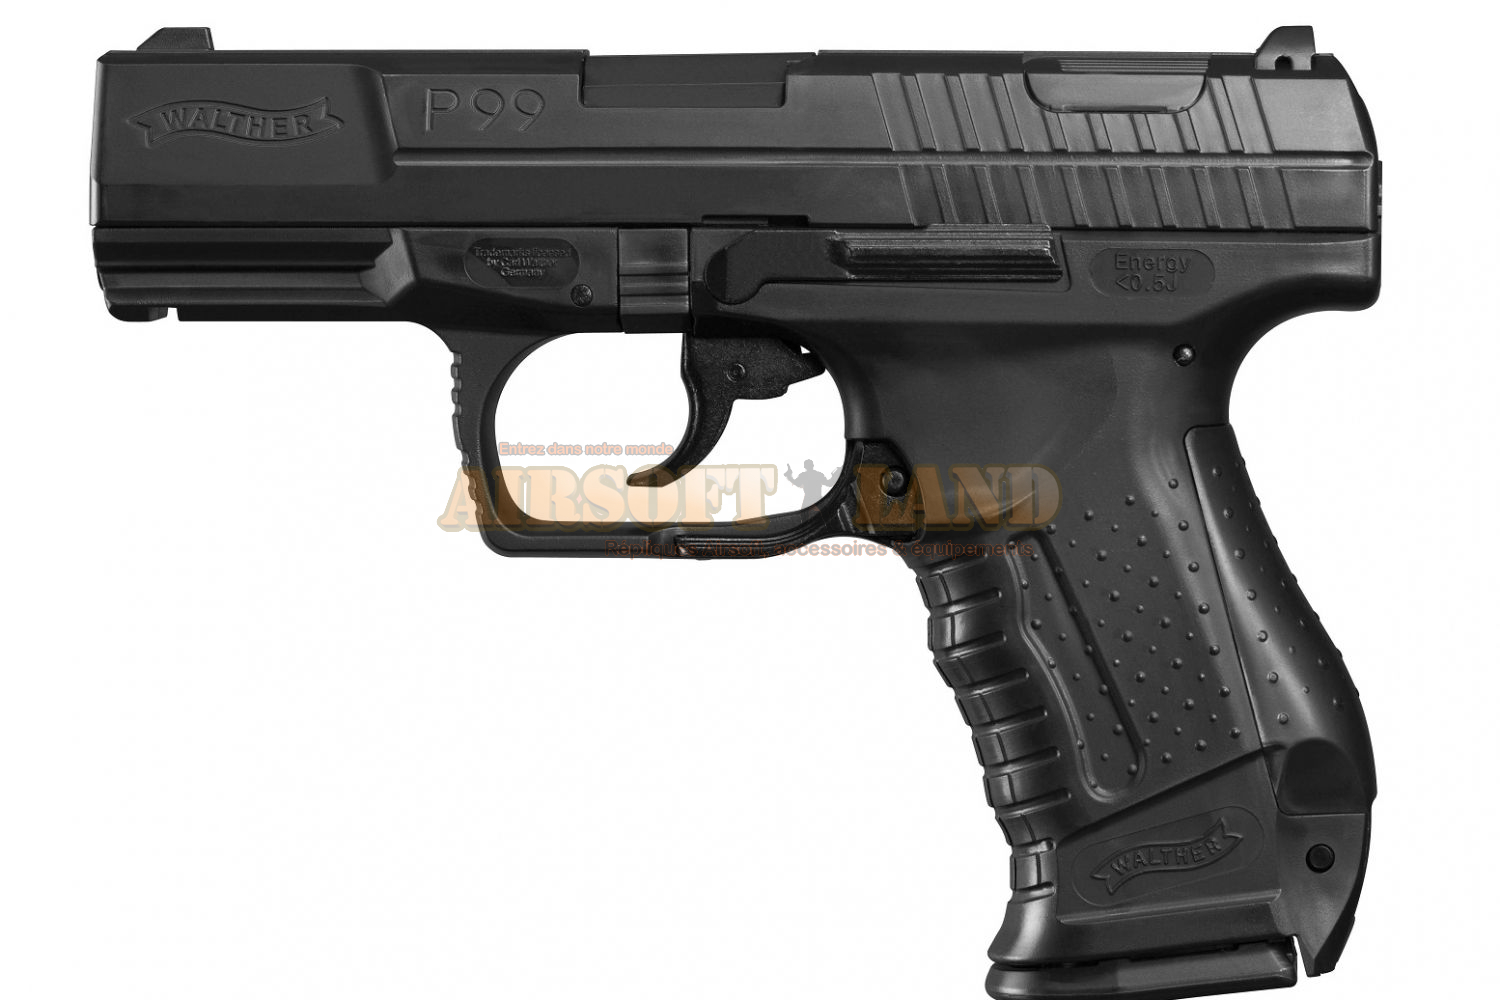 P99 noir Walther